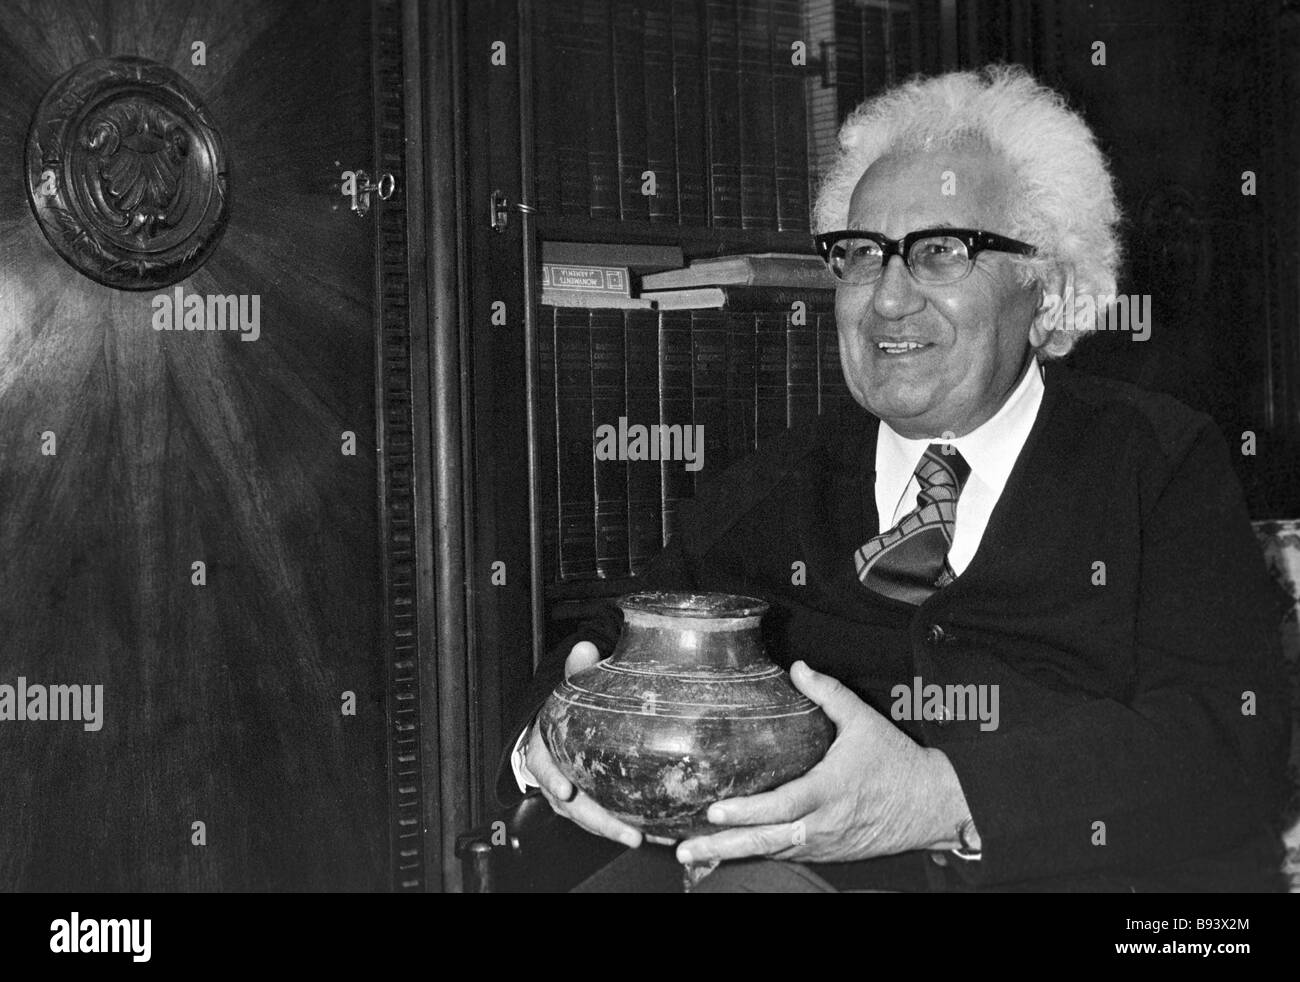 Babken Arakelyan director of the Archaeology Institute at the Academy of Sciences of the Armenian SSR with an antique - Stock Image